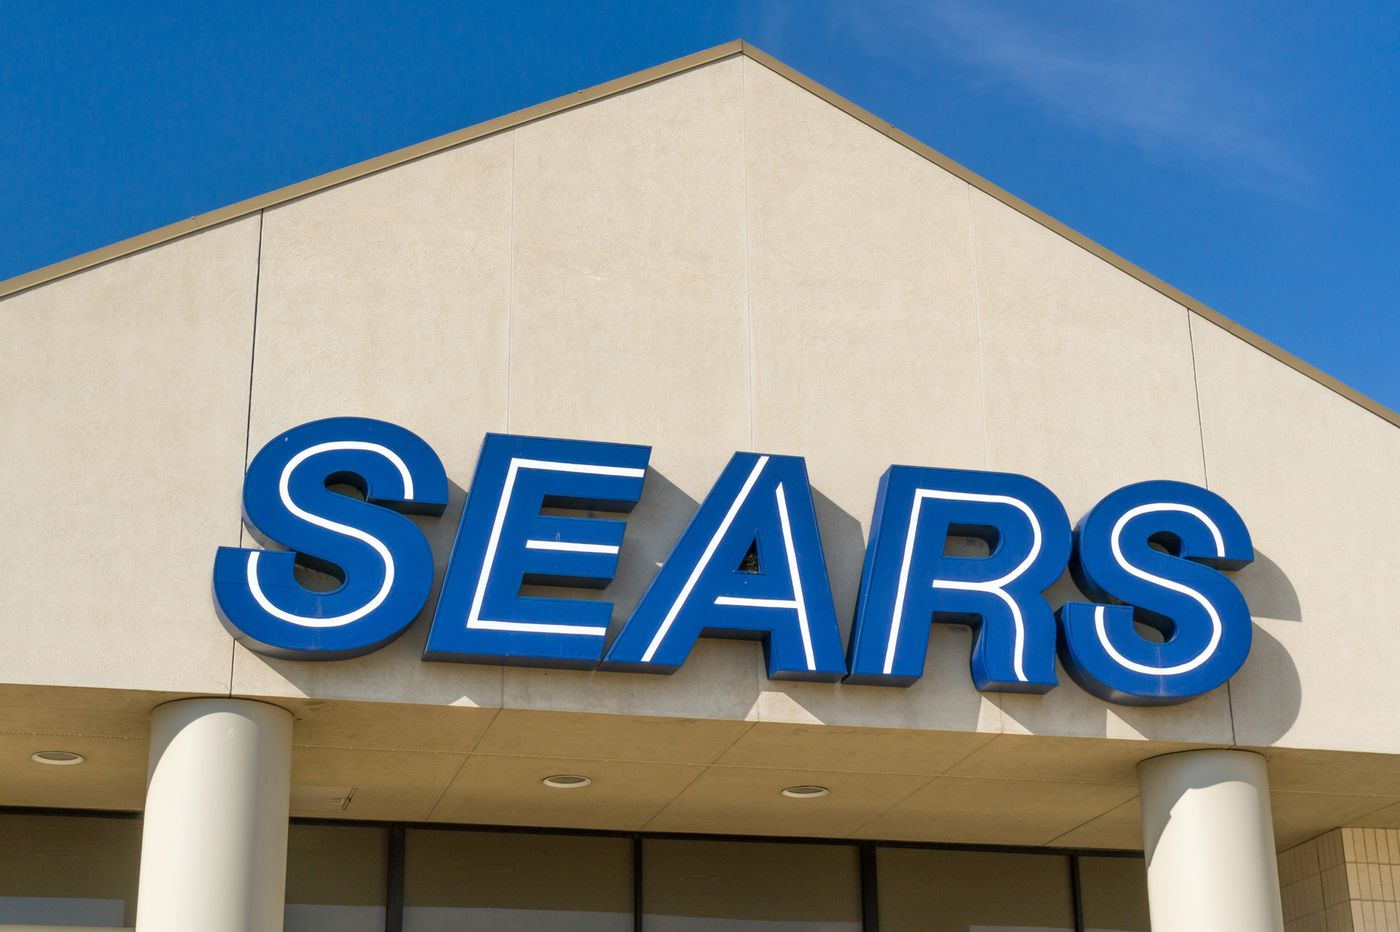 aa468ce38a690 Sears is shuttering dozens of stores. Here's a list of the closings.